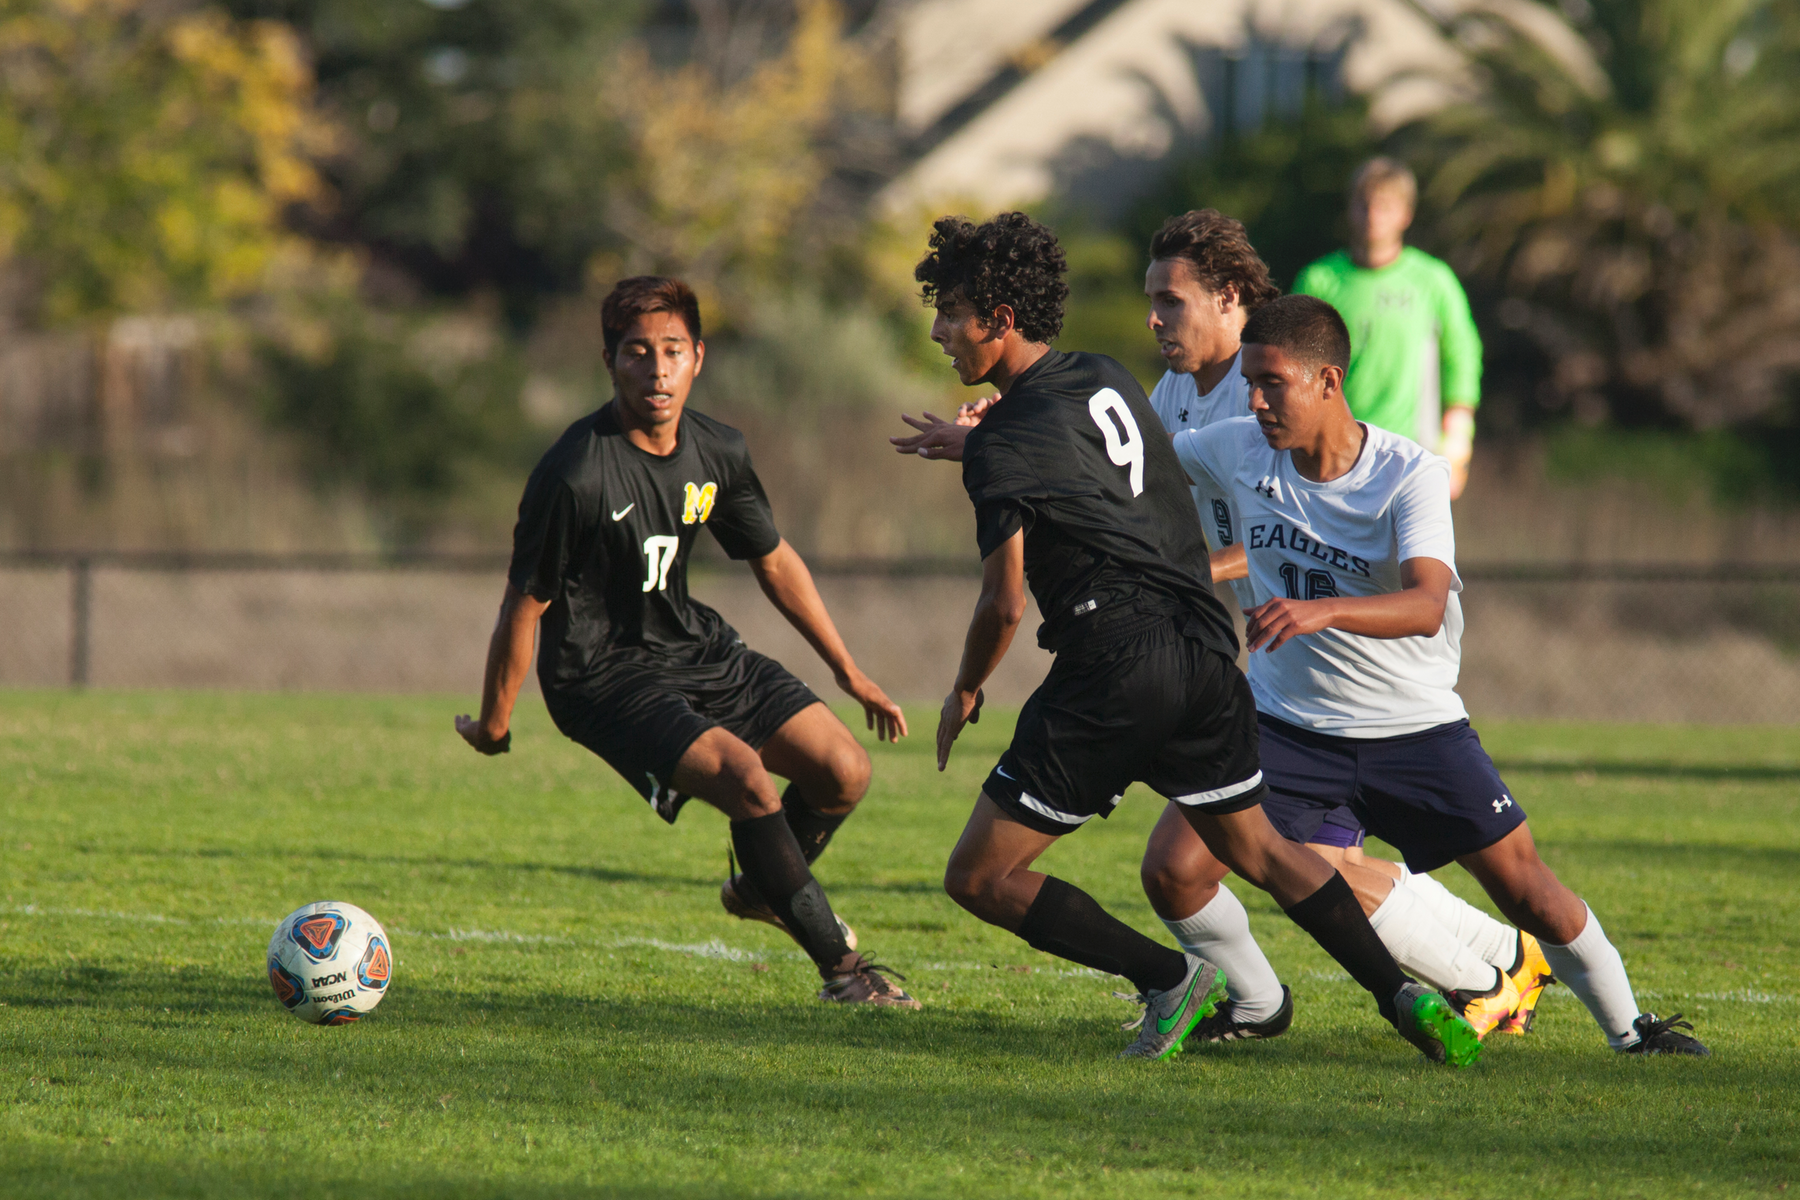 College of Marin Men's Soccer Drops Tight Affair To Gavilan 1-0